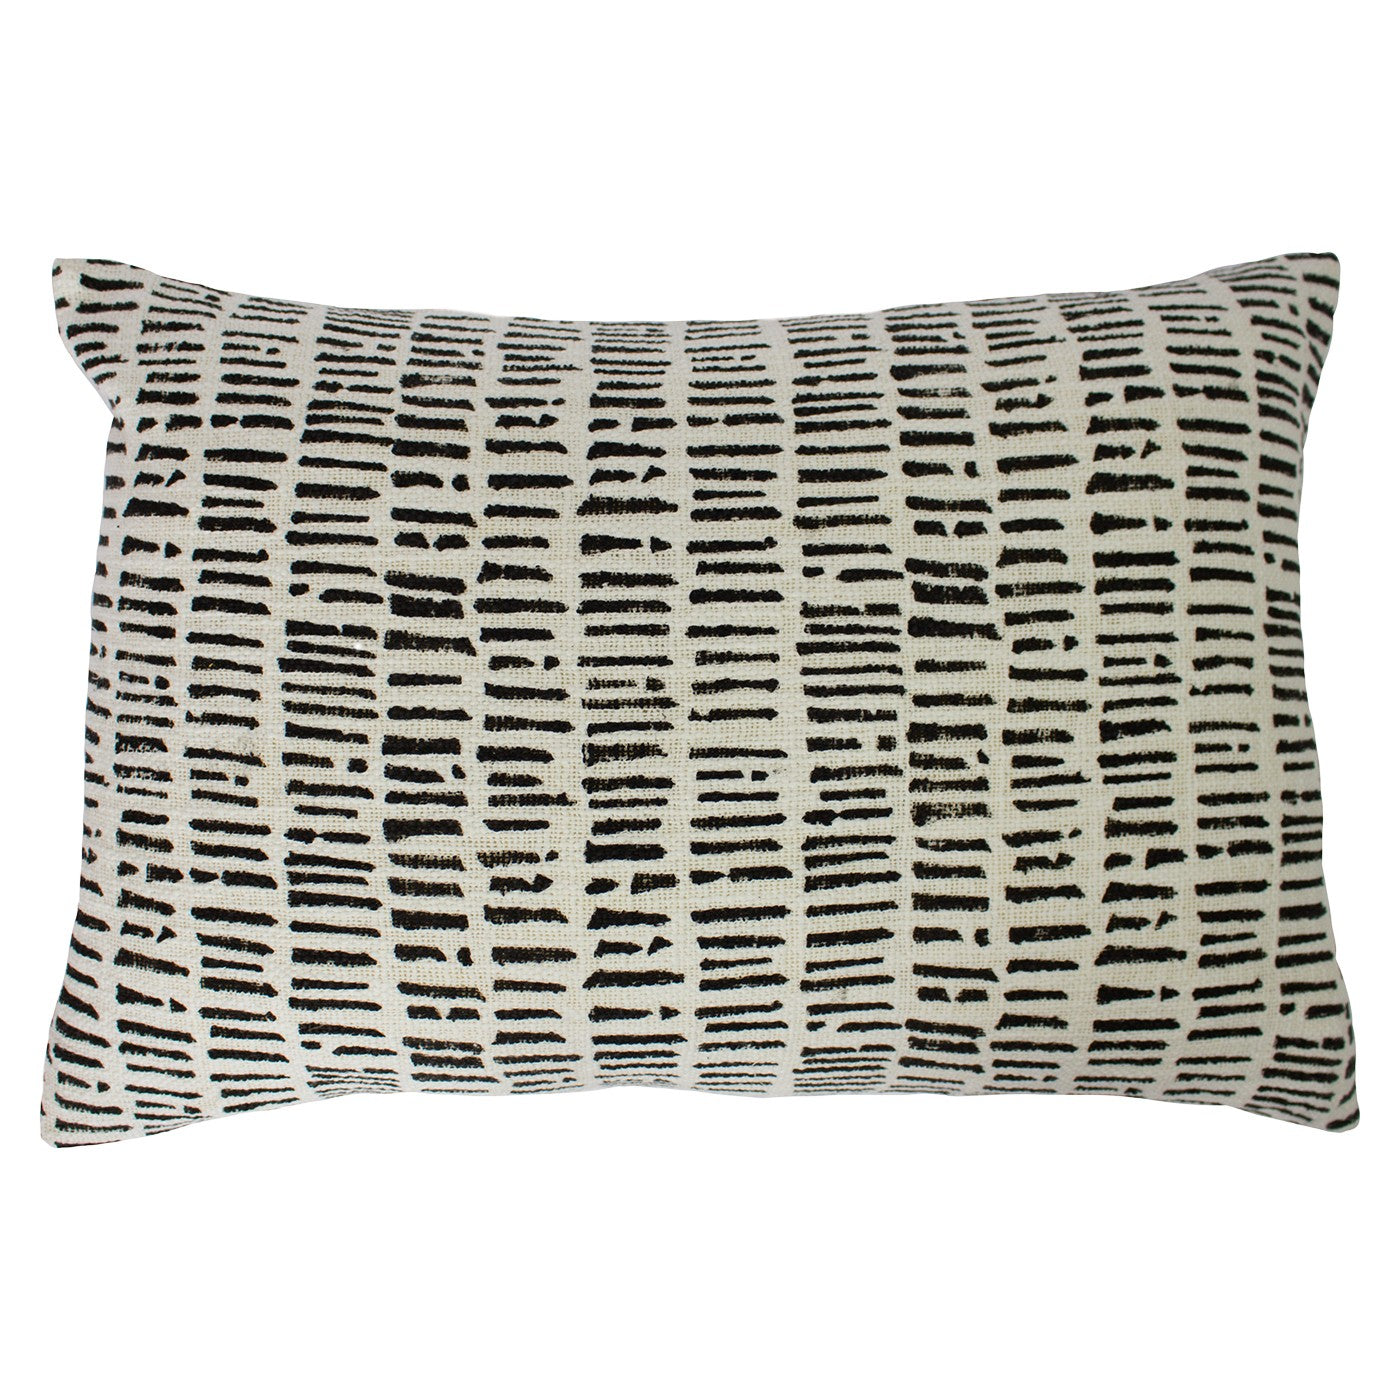 Adara Cushion 100% Cotton